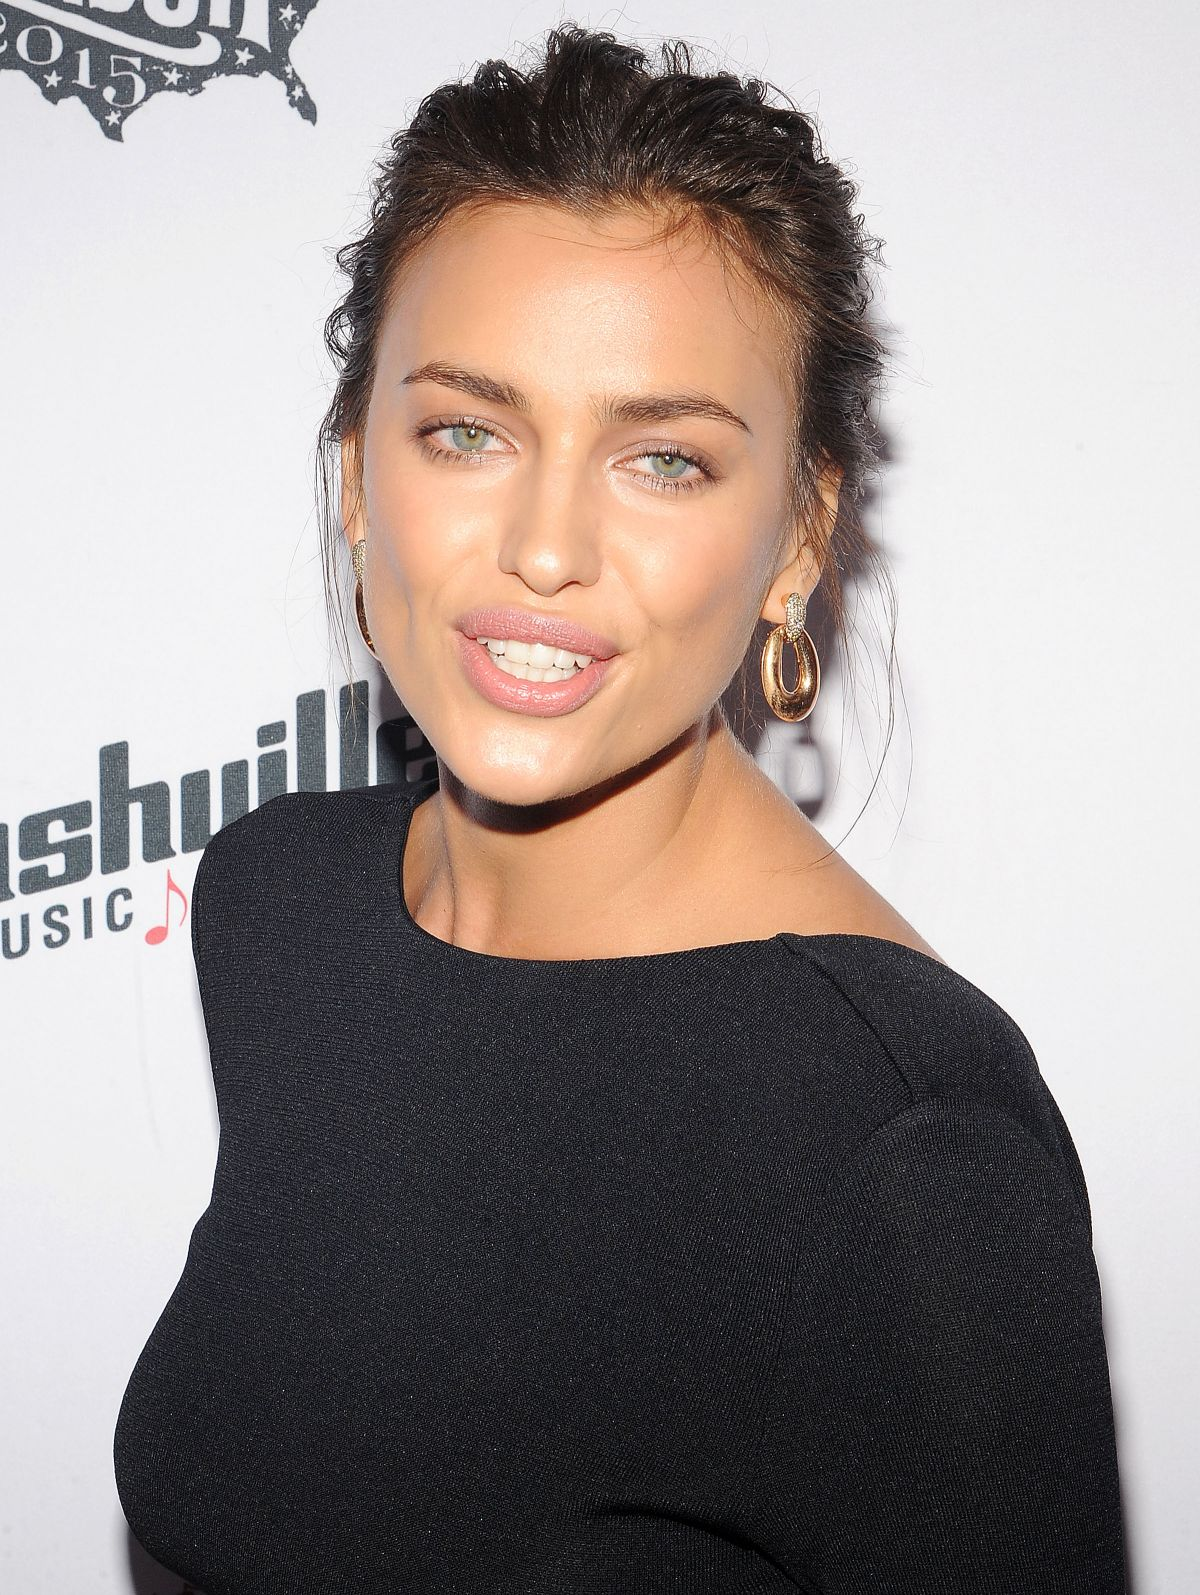 Ronaldo girlfriend Irina Shayk at Sports Illustrated Swimsuit Issue Celebration